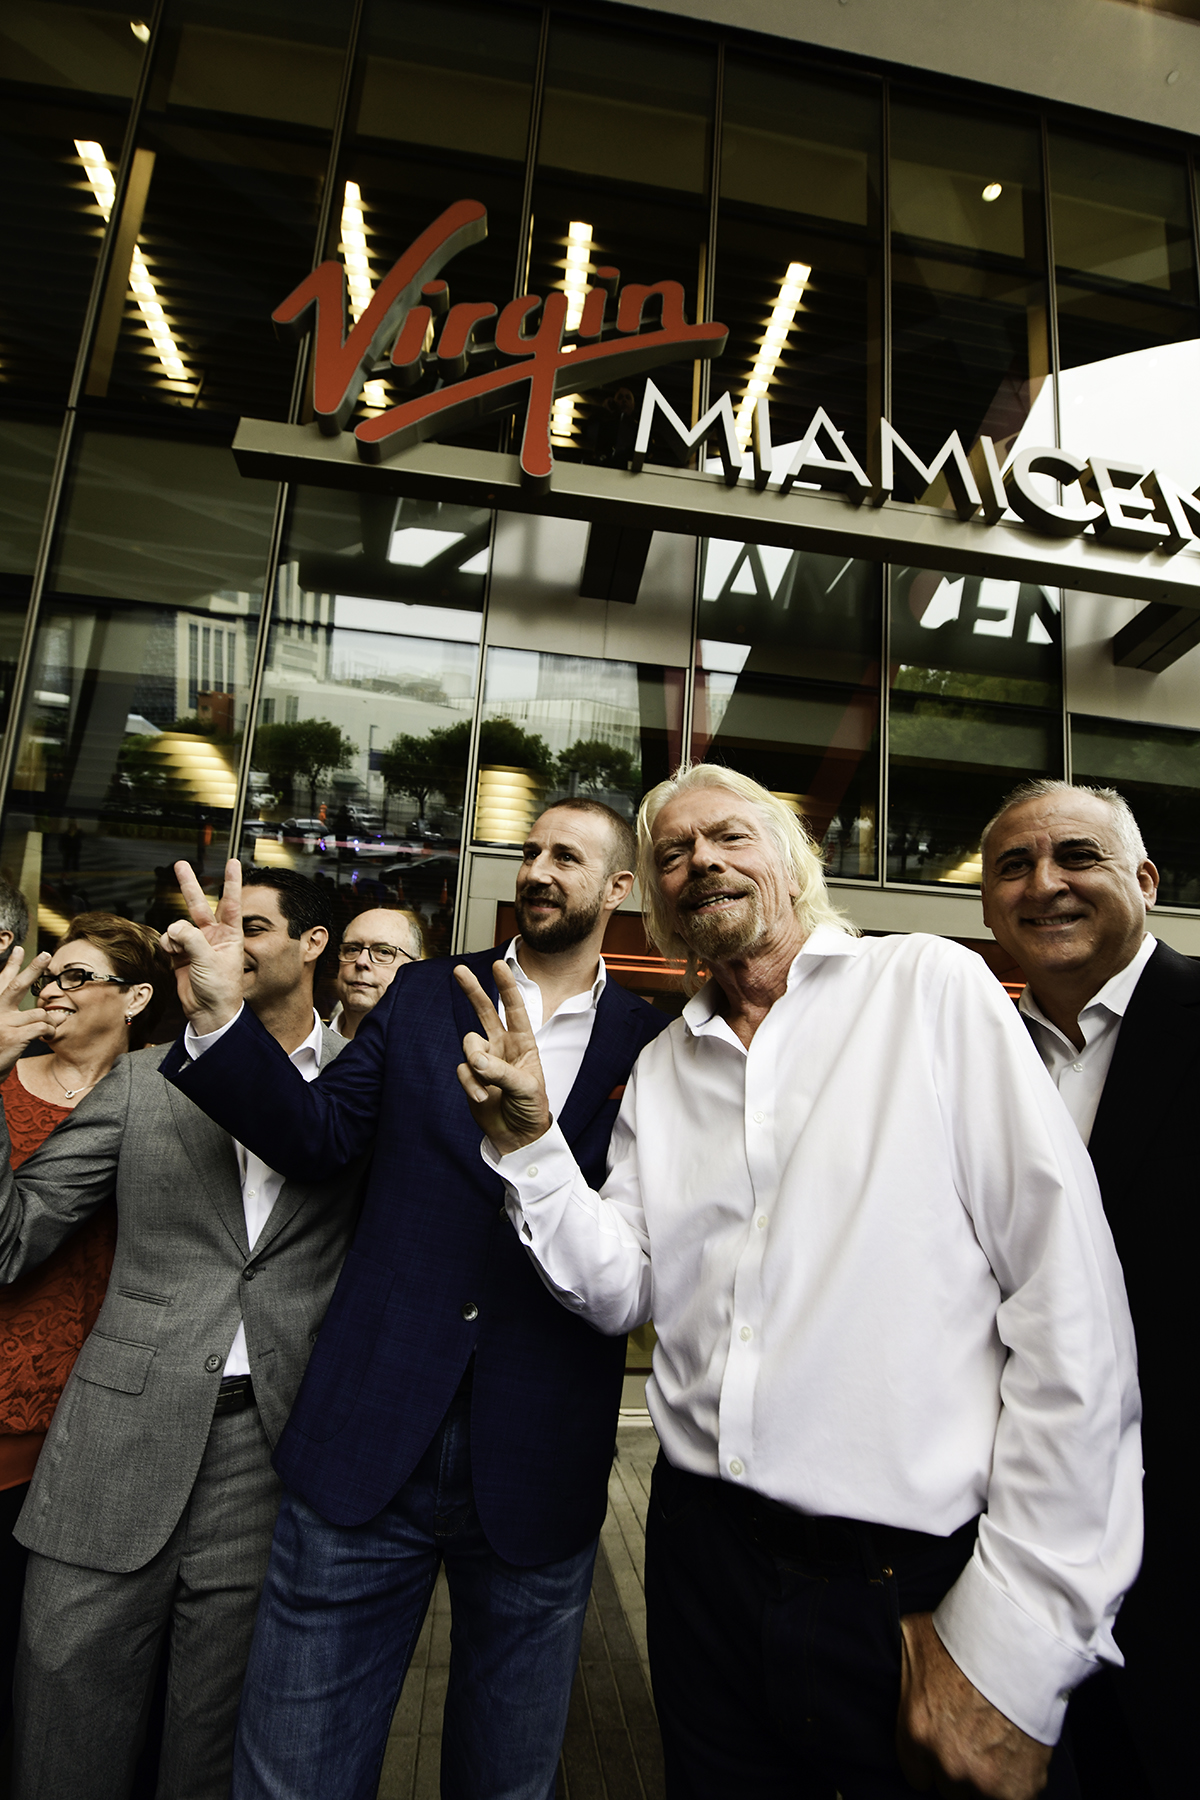 "Virgin Trains Virgin Group founder Sir Richard Branson and Virgin Trains USA President Patrick Goddard heralded the transition of Brightline to Virgin Trains USA at MiamiCentral. ""Virgin has a long history of changing industries for the better and inspiring enduring loyalty through outstanding customer experience,"" Branson said. ""Today marks the first step in that journey with Virgin Trains USA as we unveiled the beautiful Virgin MiamiCentral station."""